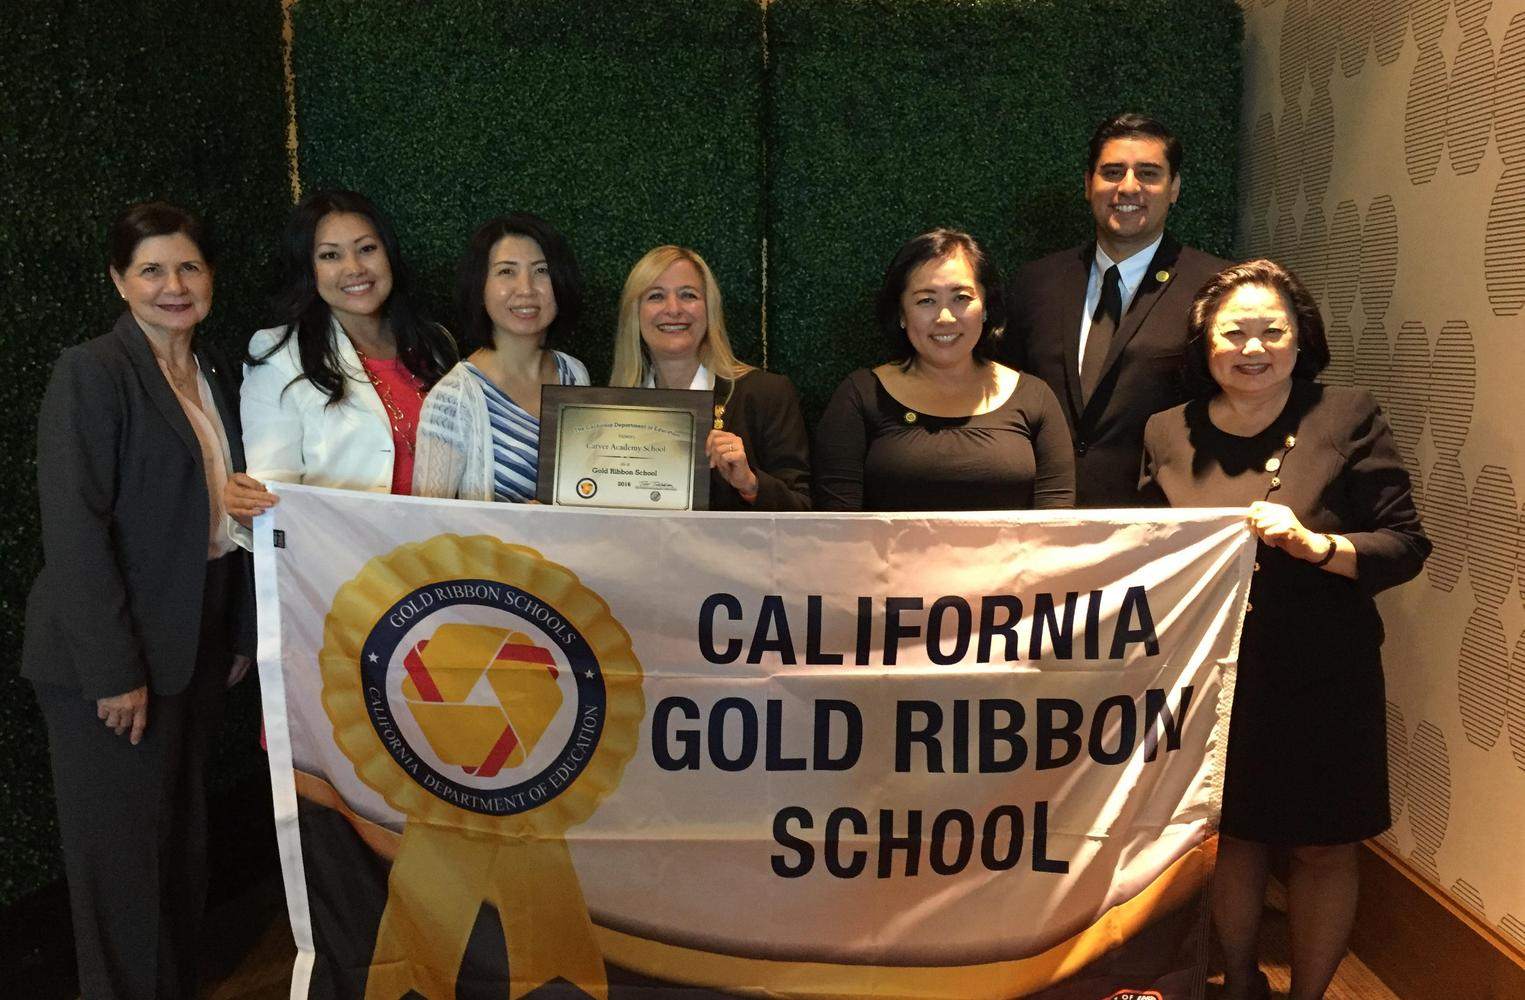 Carver academy receiving CA Gold Ribbon School Award